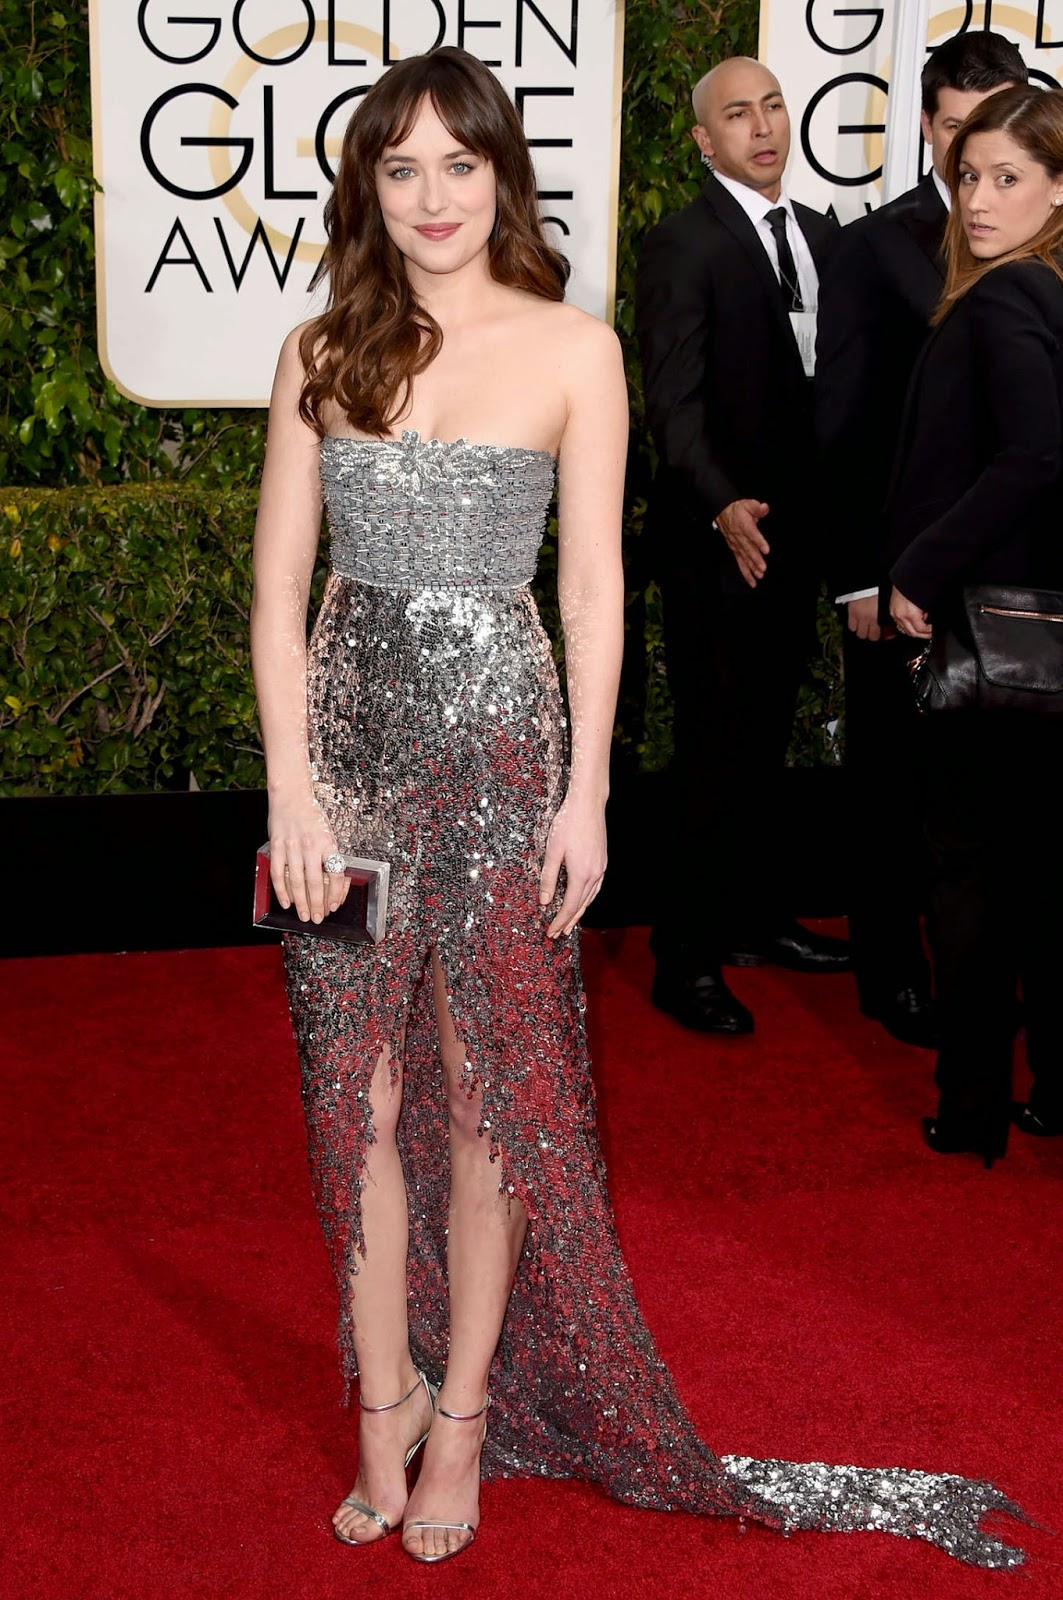 Dakota Johnson sizzles in a sparkling sequinned dress at the 2015 Golden Globes